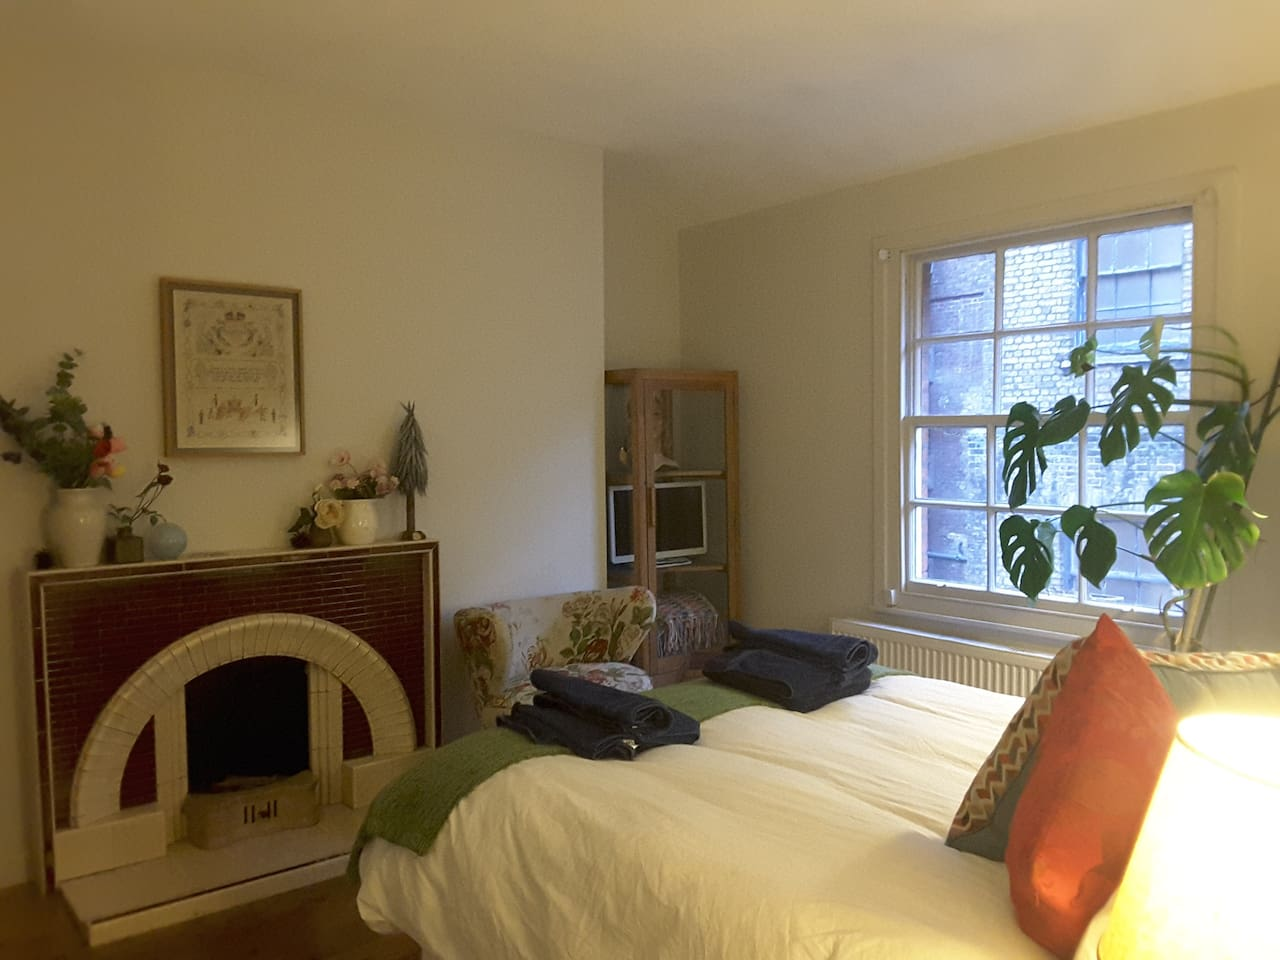 Cosy Studio Room with Quirky Vintage Furnishings, Art Deco Fireplace and High Ceilings